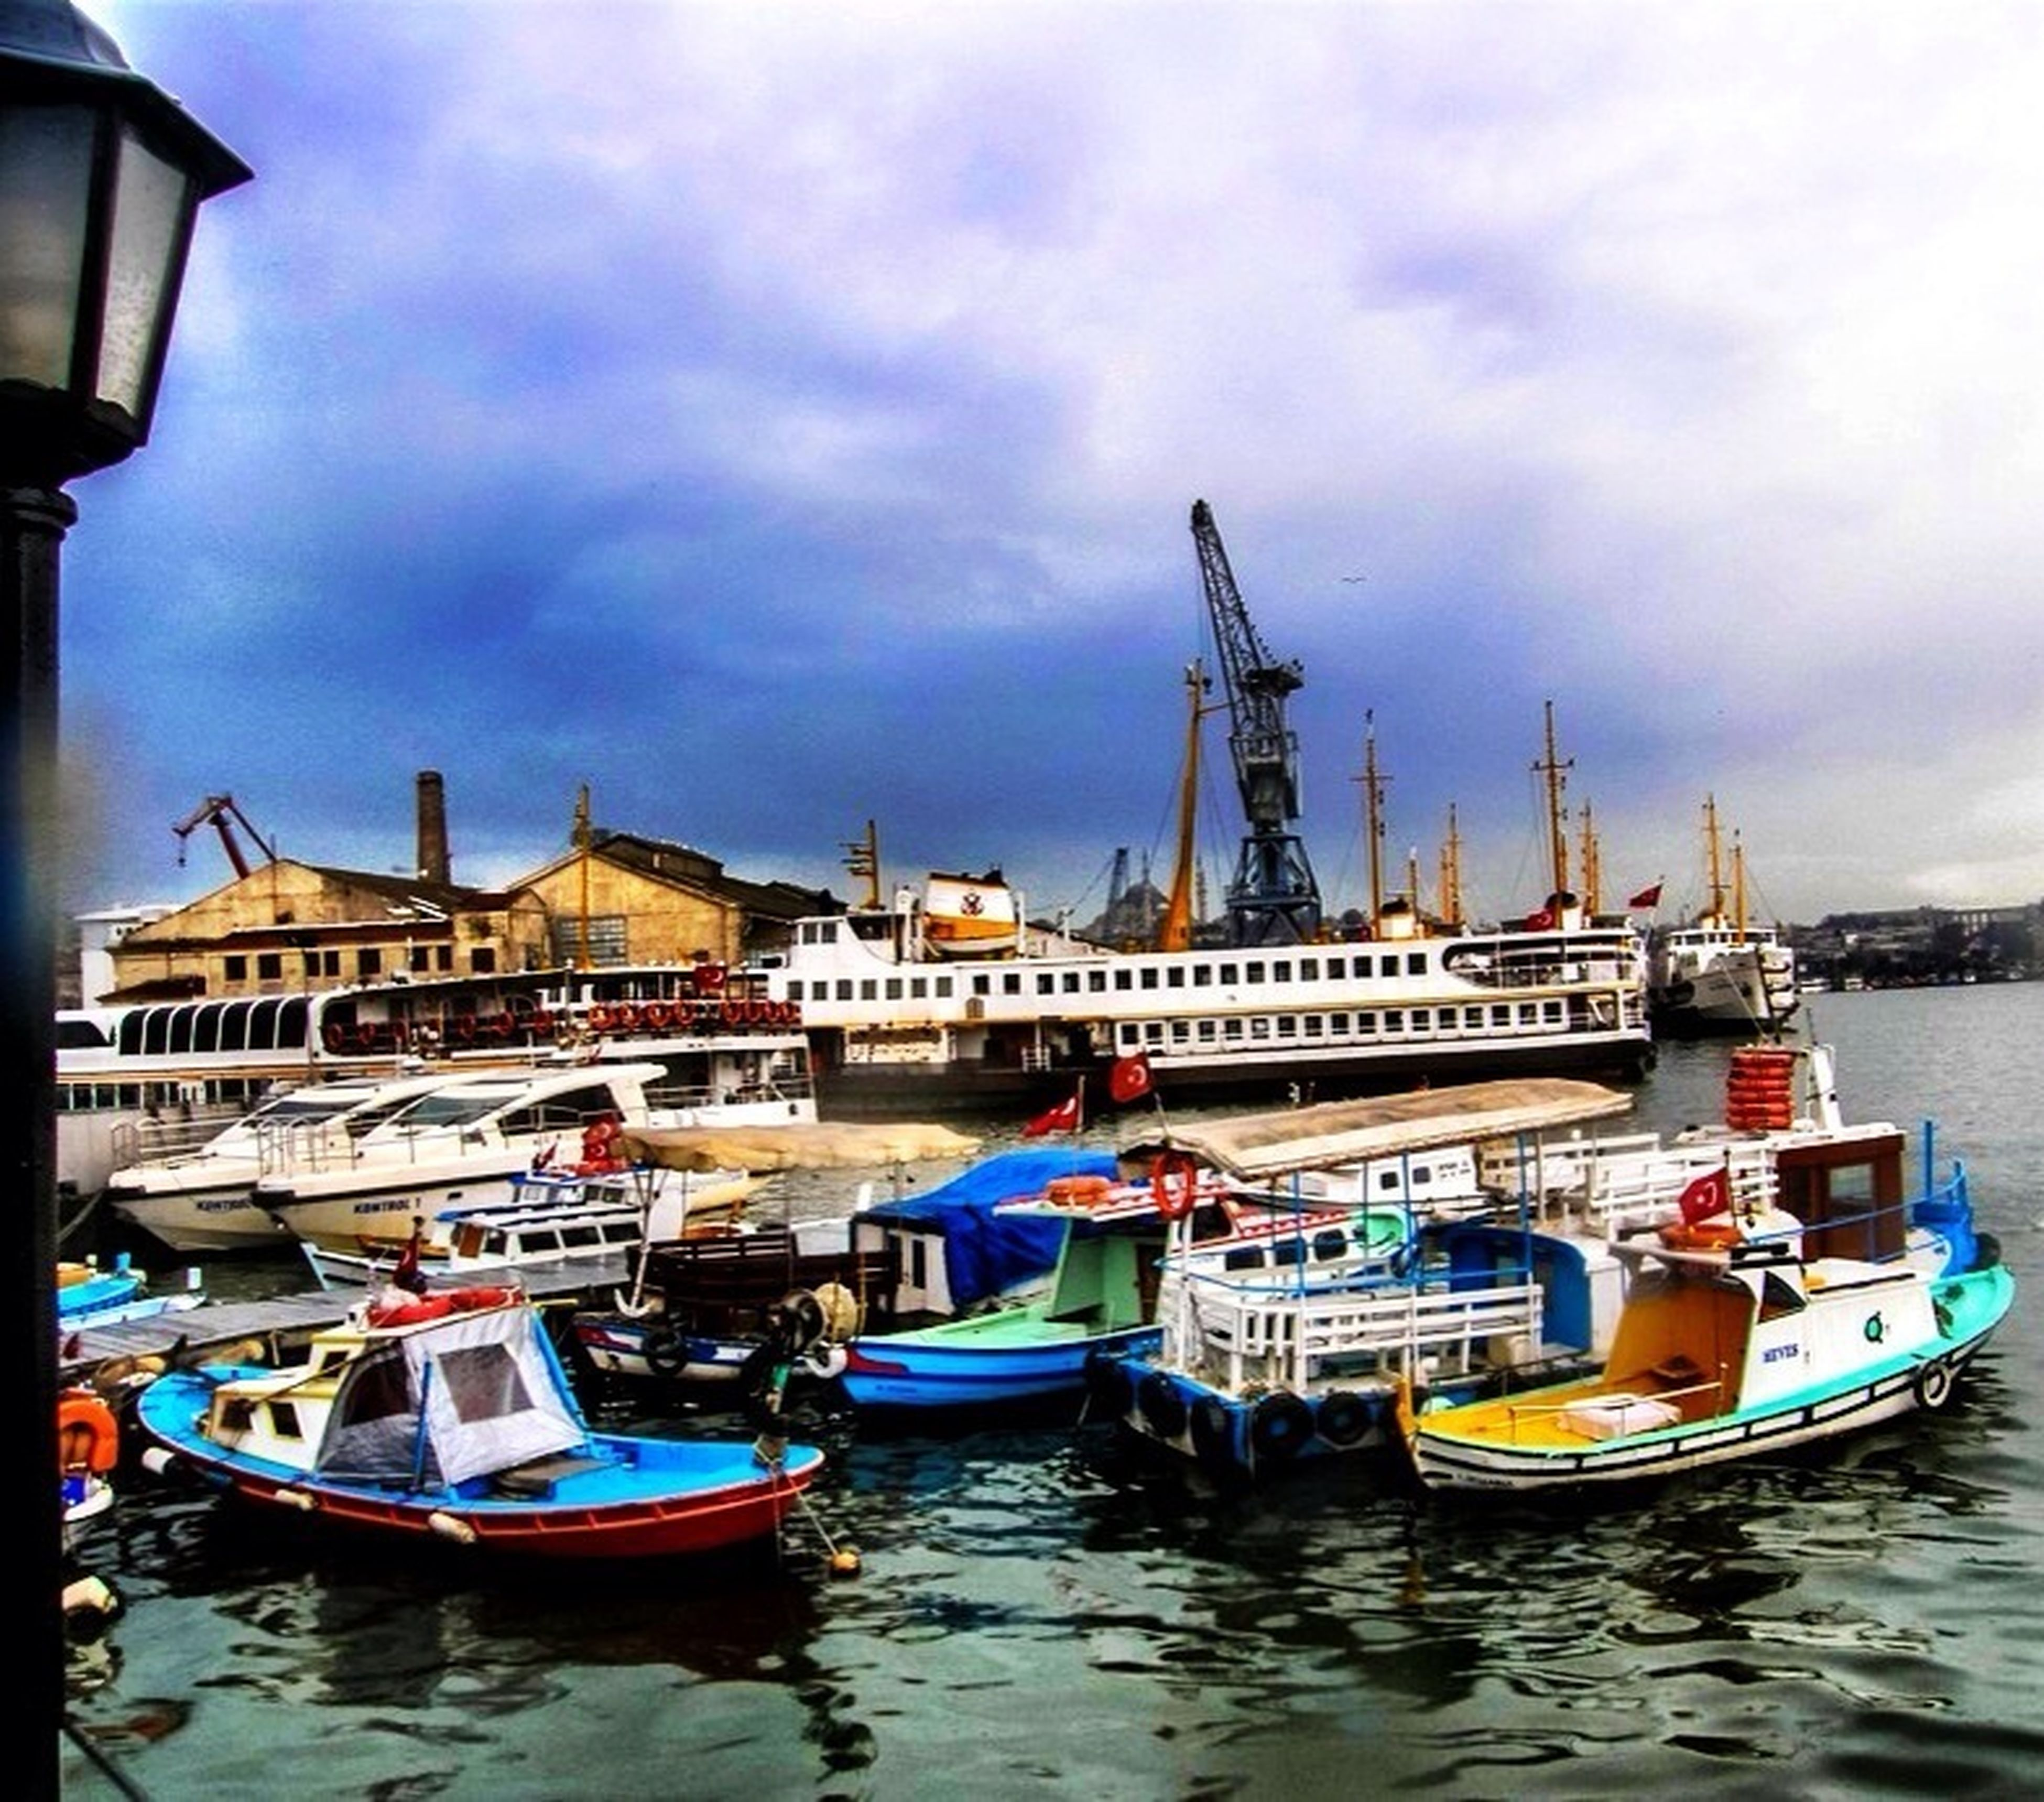 architecture, nautical vessel, building exterior, built structure, waterfront, sky, water, moored, transportation, cloud - sky, boat, mode of transport, cloud, cloudy, harbor, outdoors, day, no people, city, river